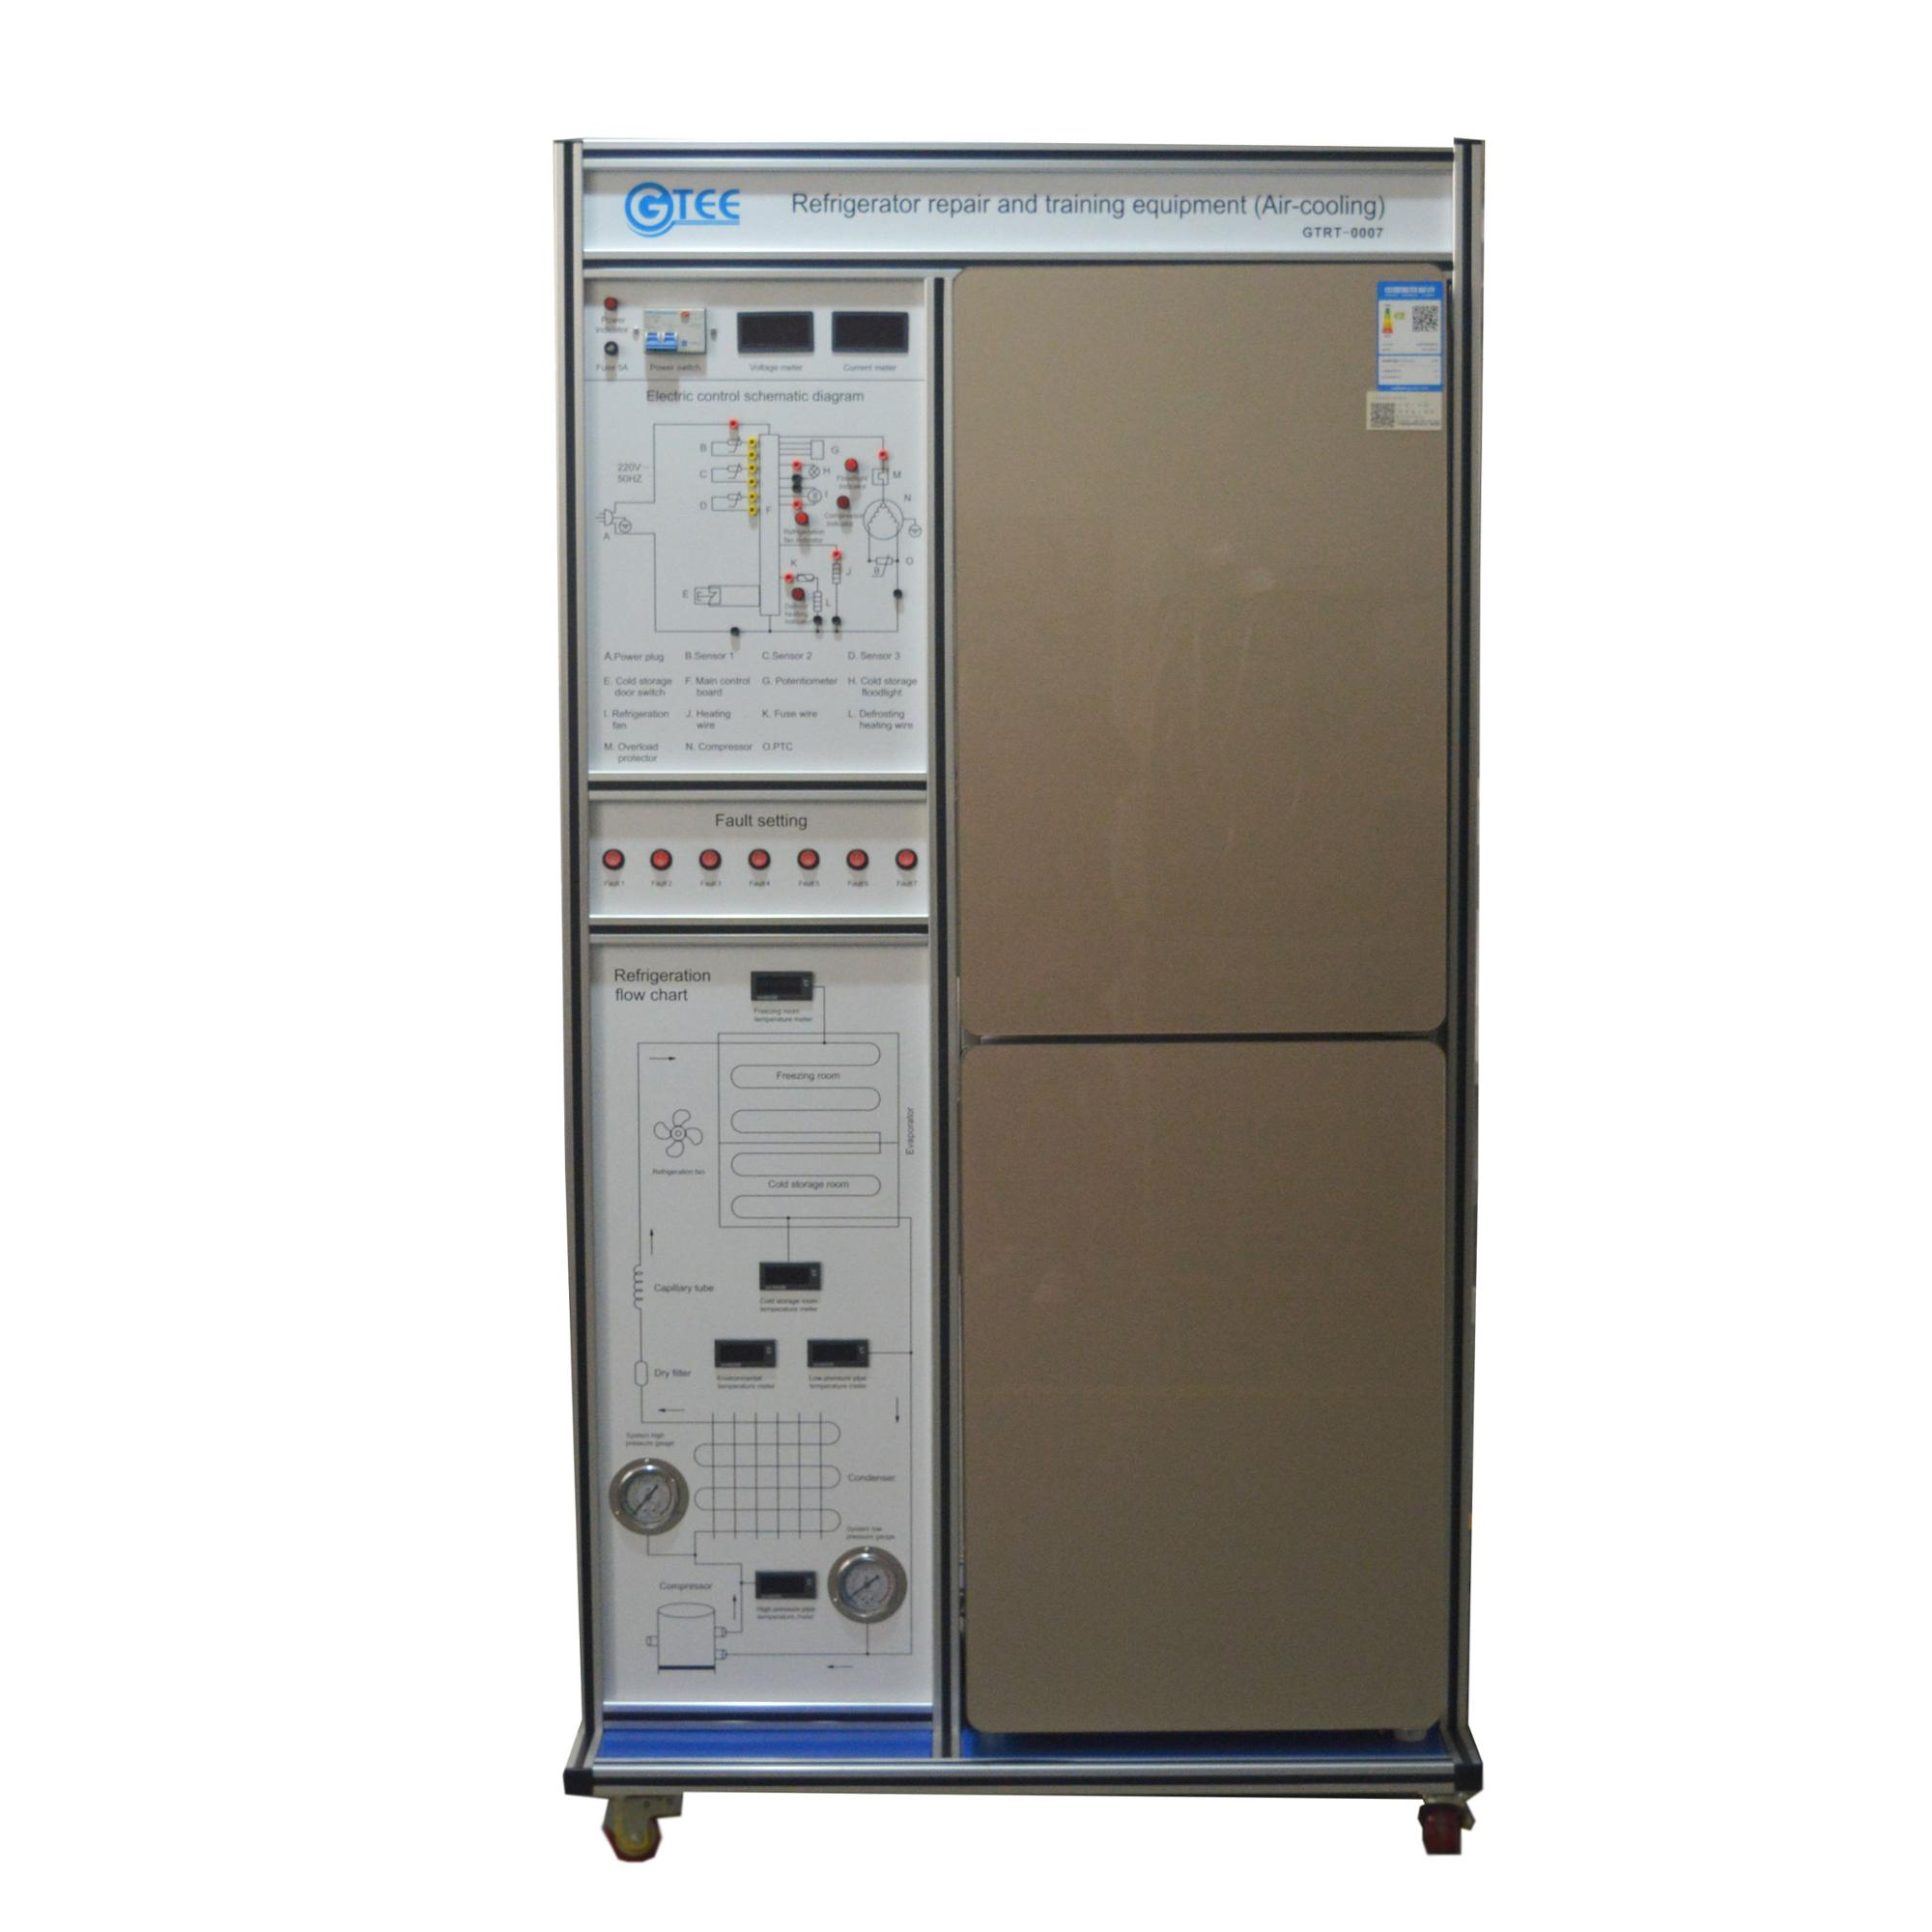 Vocational Skill Lab Refrigerator Repair And Training Equipment Air Cooling Schematic Dsc 0024 4